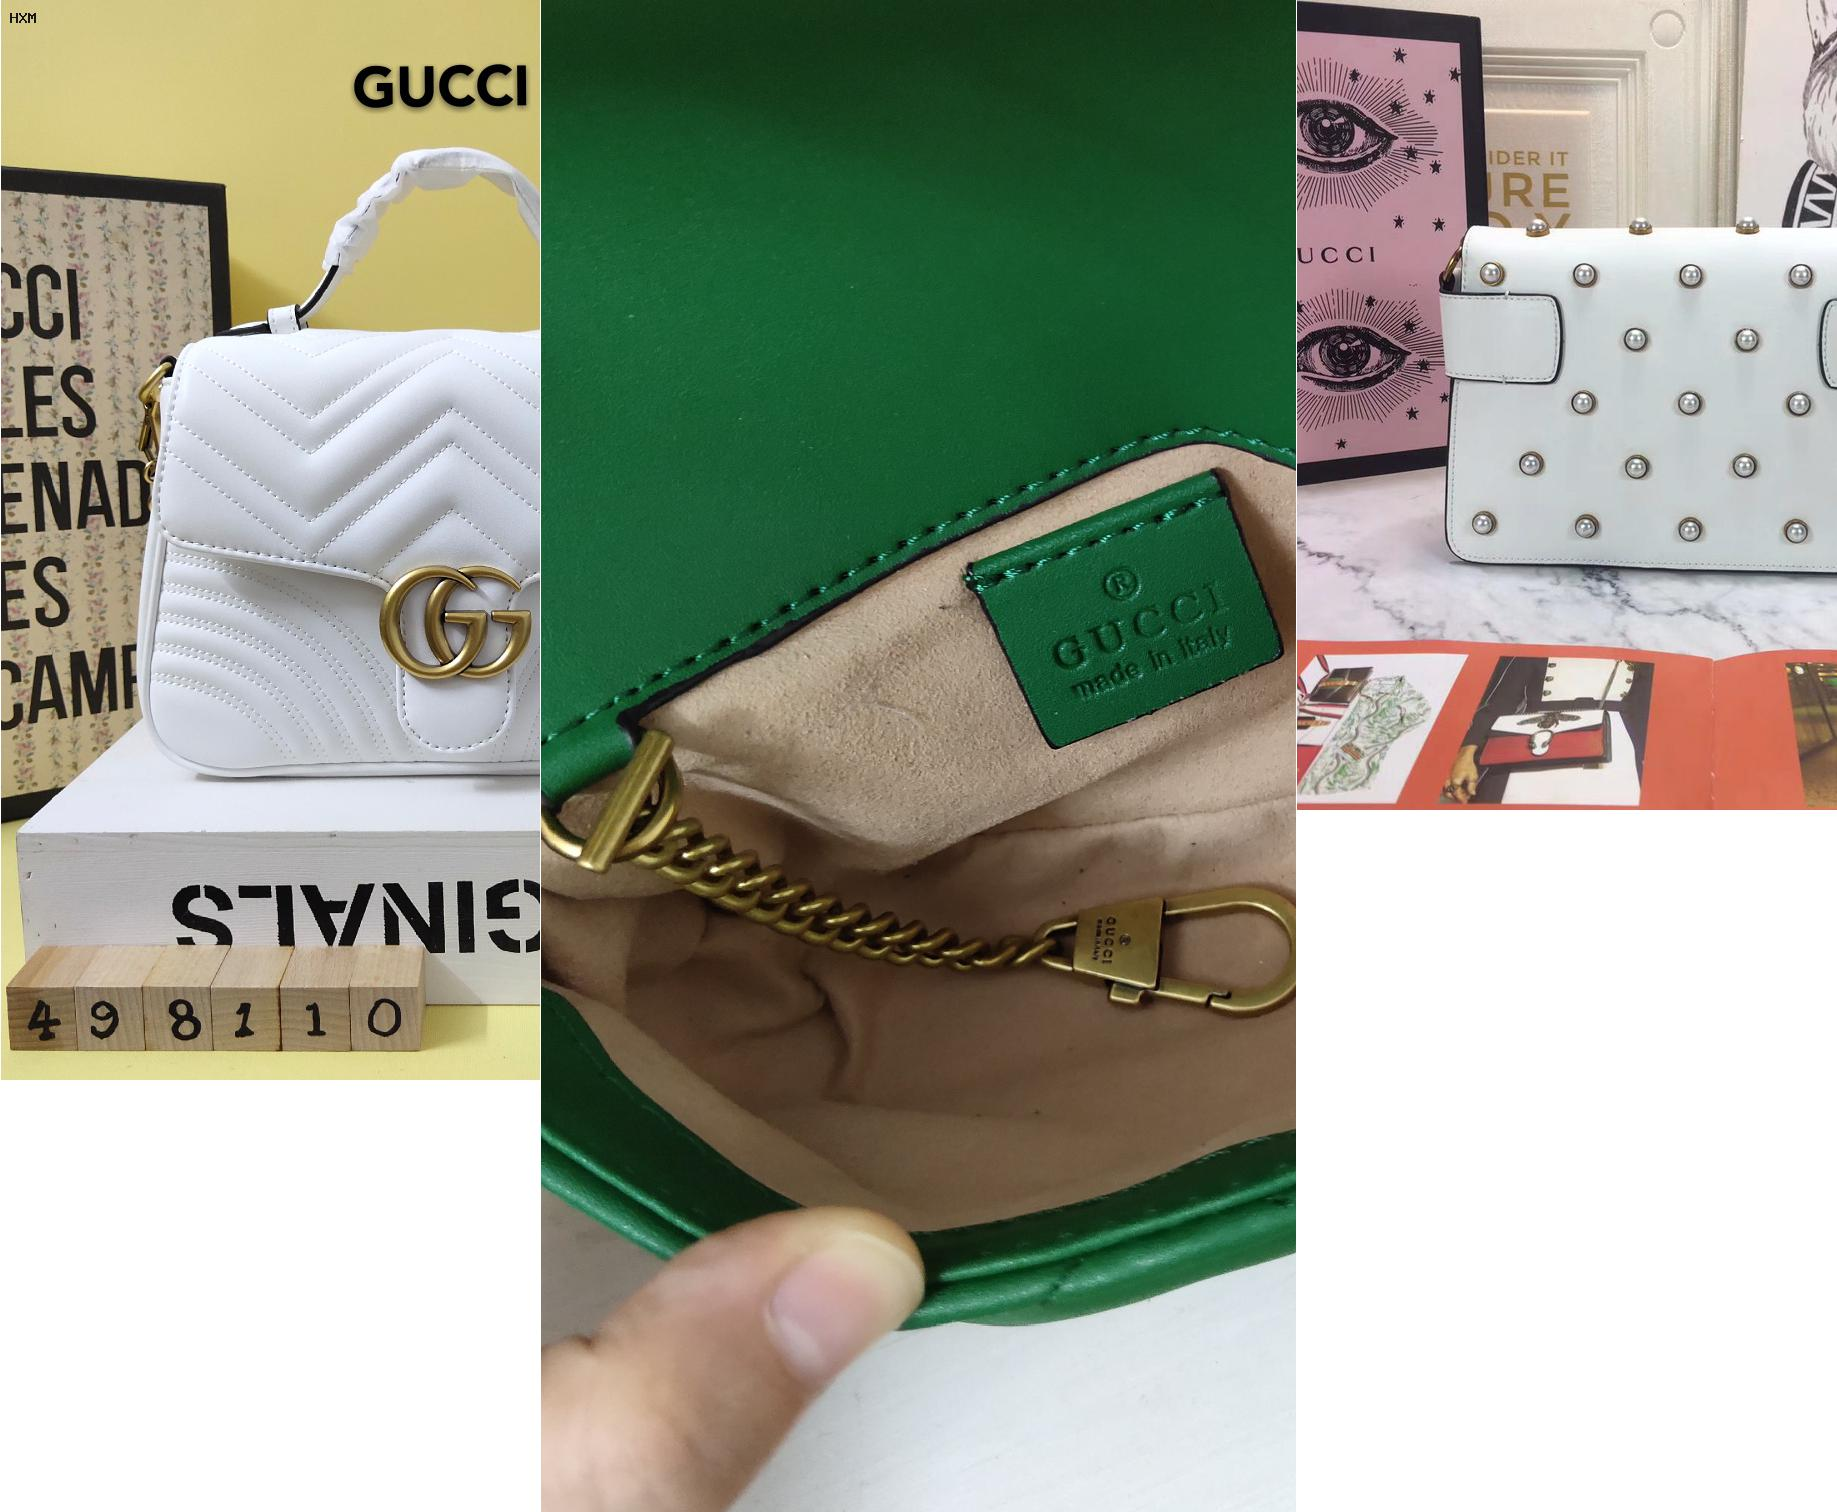 sacoche gucci louis vuitton